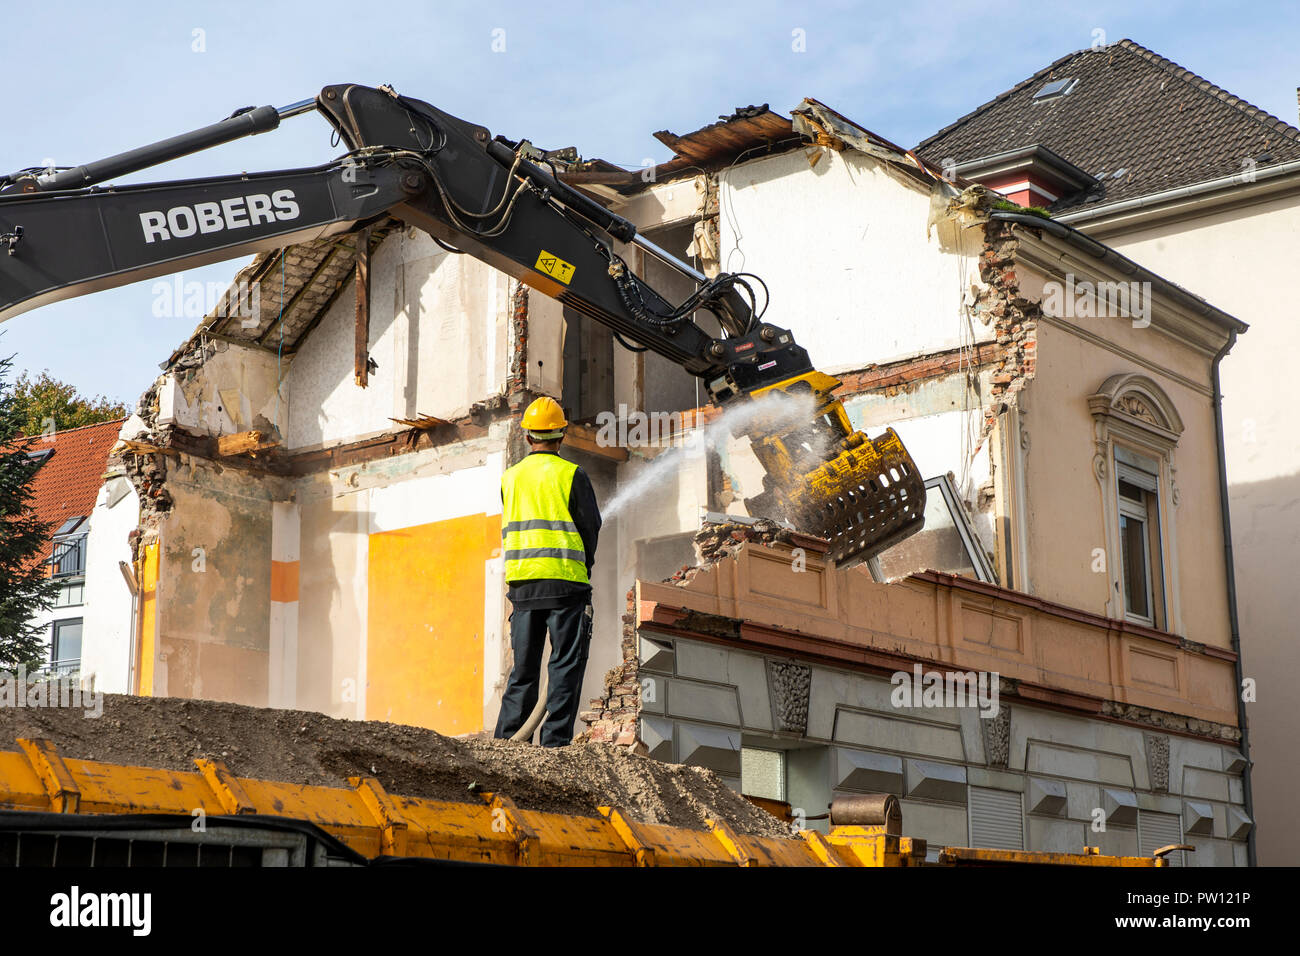 Demolition of an older residential building, new rental flats, Germany Stock Photo